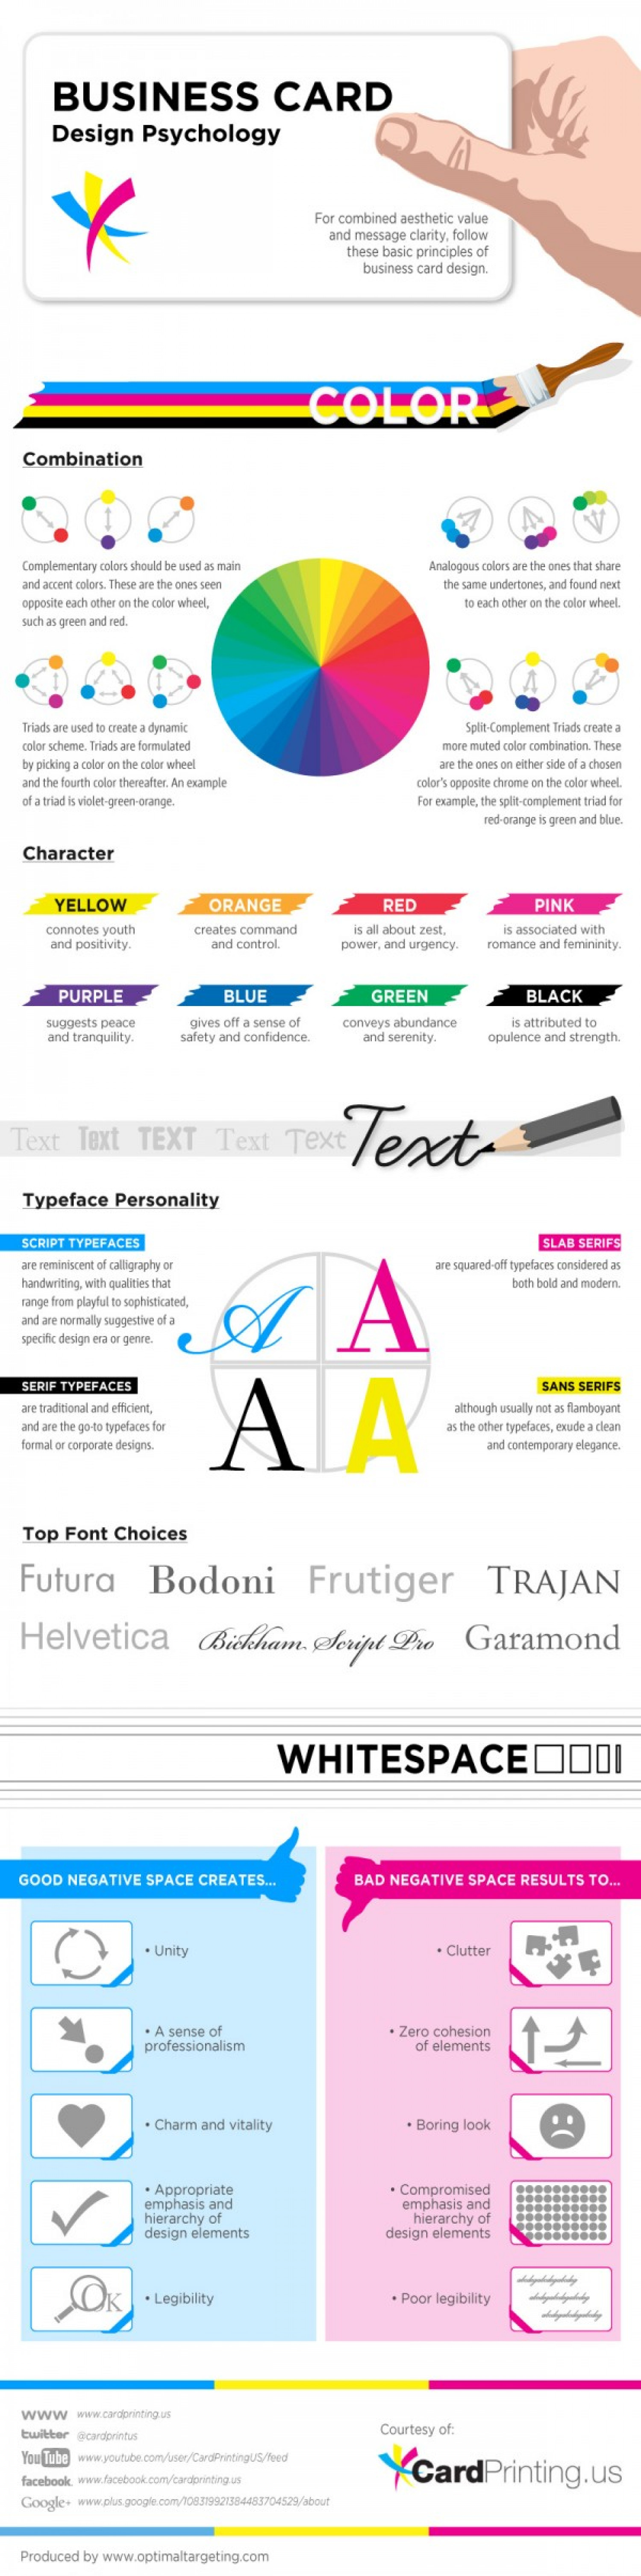 The Psychology of Business Card Design Infographic